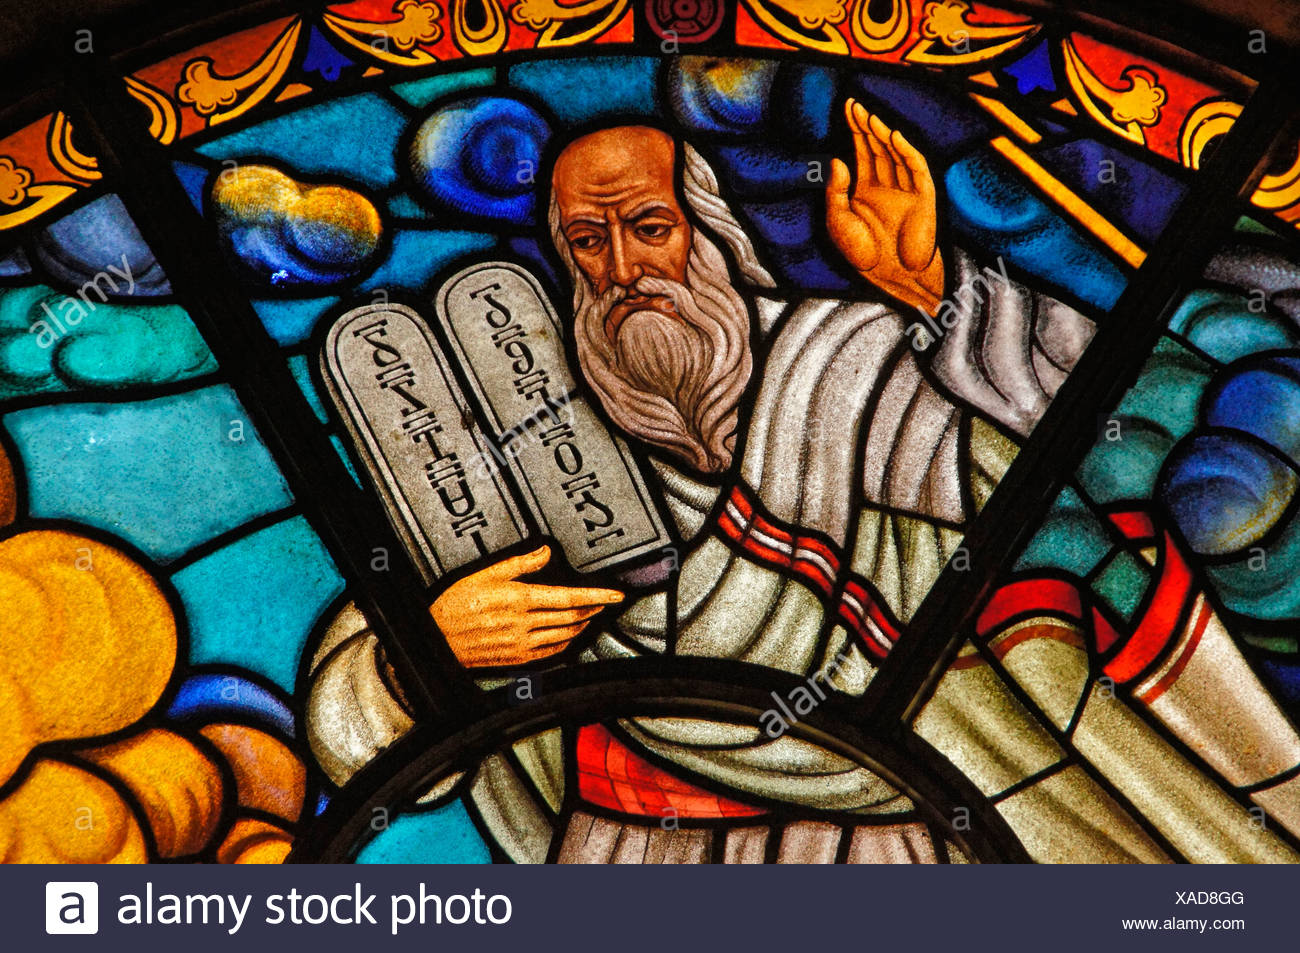 Ethiopia- Addis Abeba- at the Saint Trinity church at Adiis Ababa: Steende glass representing Mosers and the Table of Law: - Stock Image